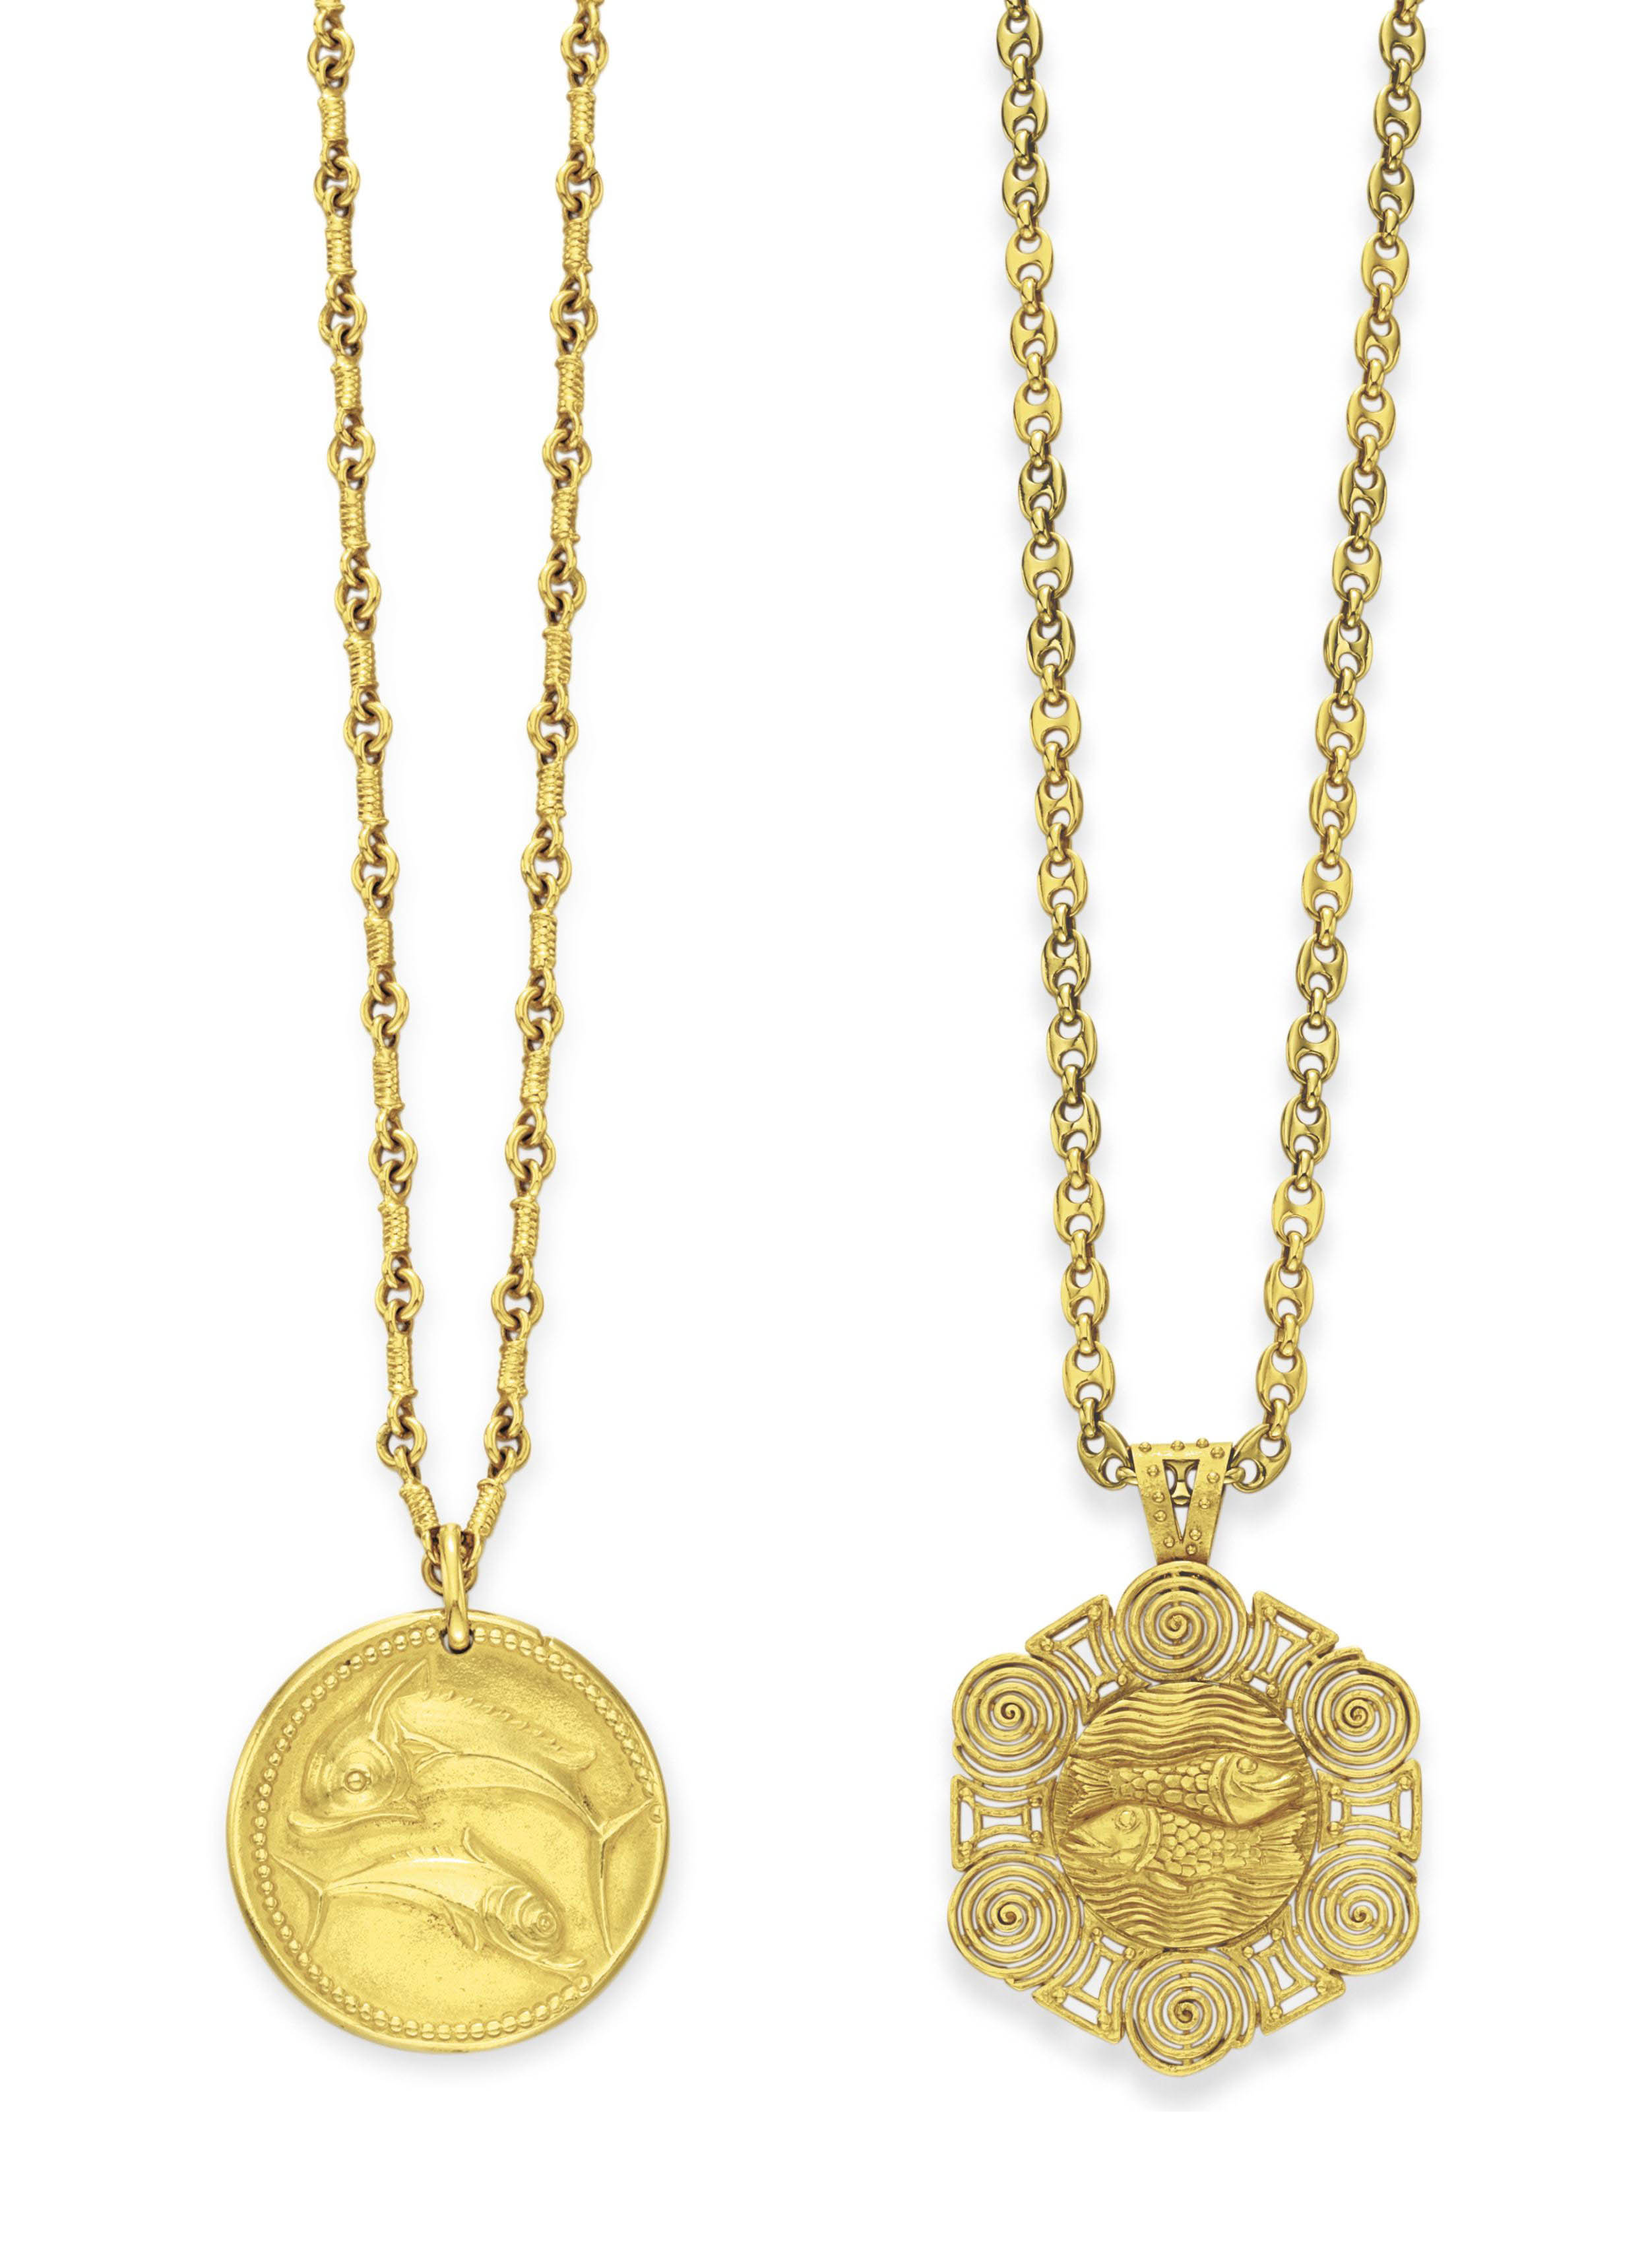 Two gold zodiac pendants by van cleef arpels jewelry pendant lot 105 aloadofball Image collections